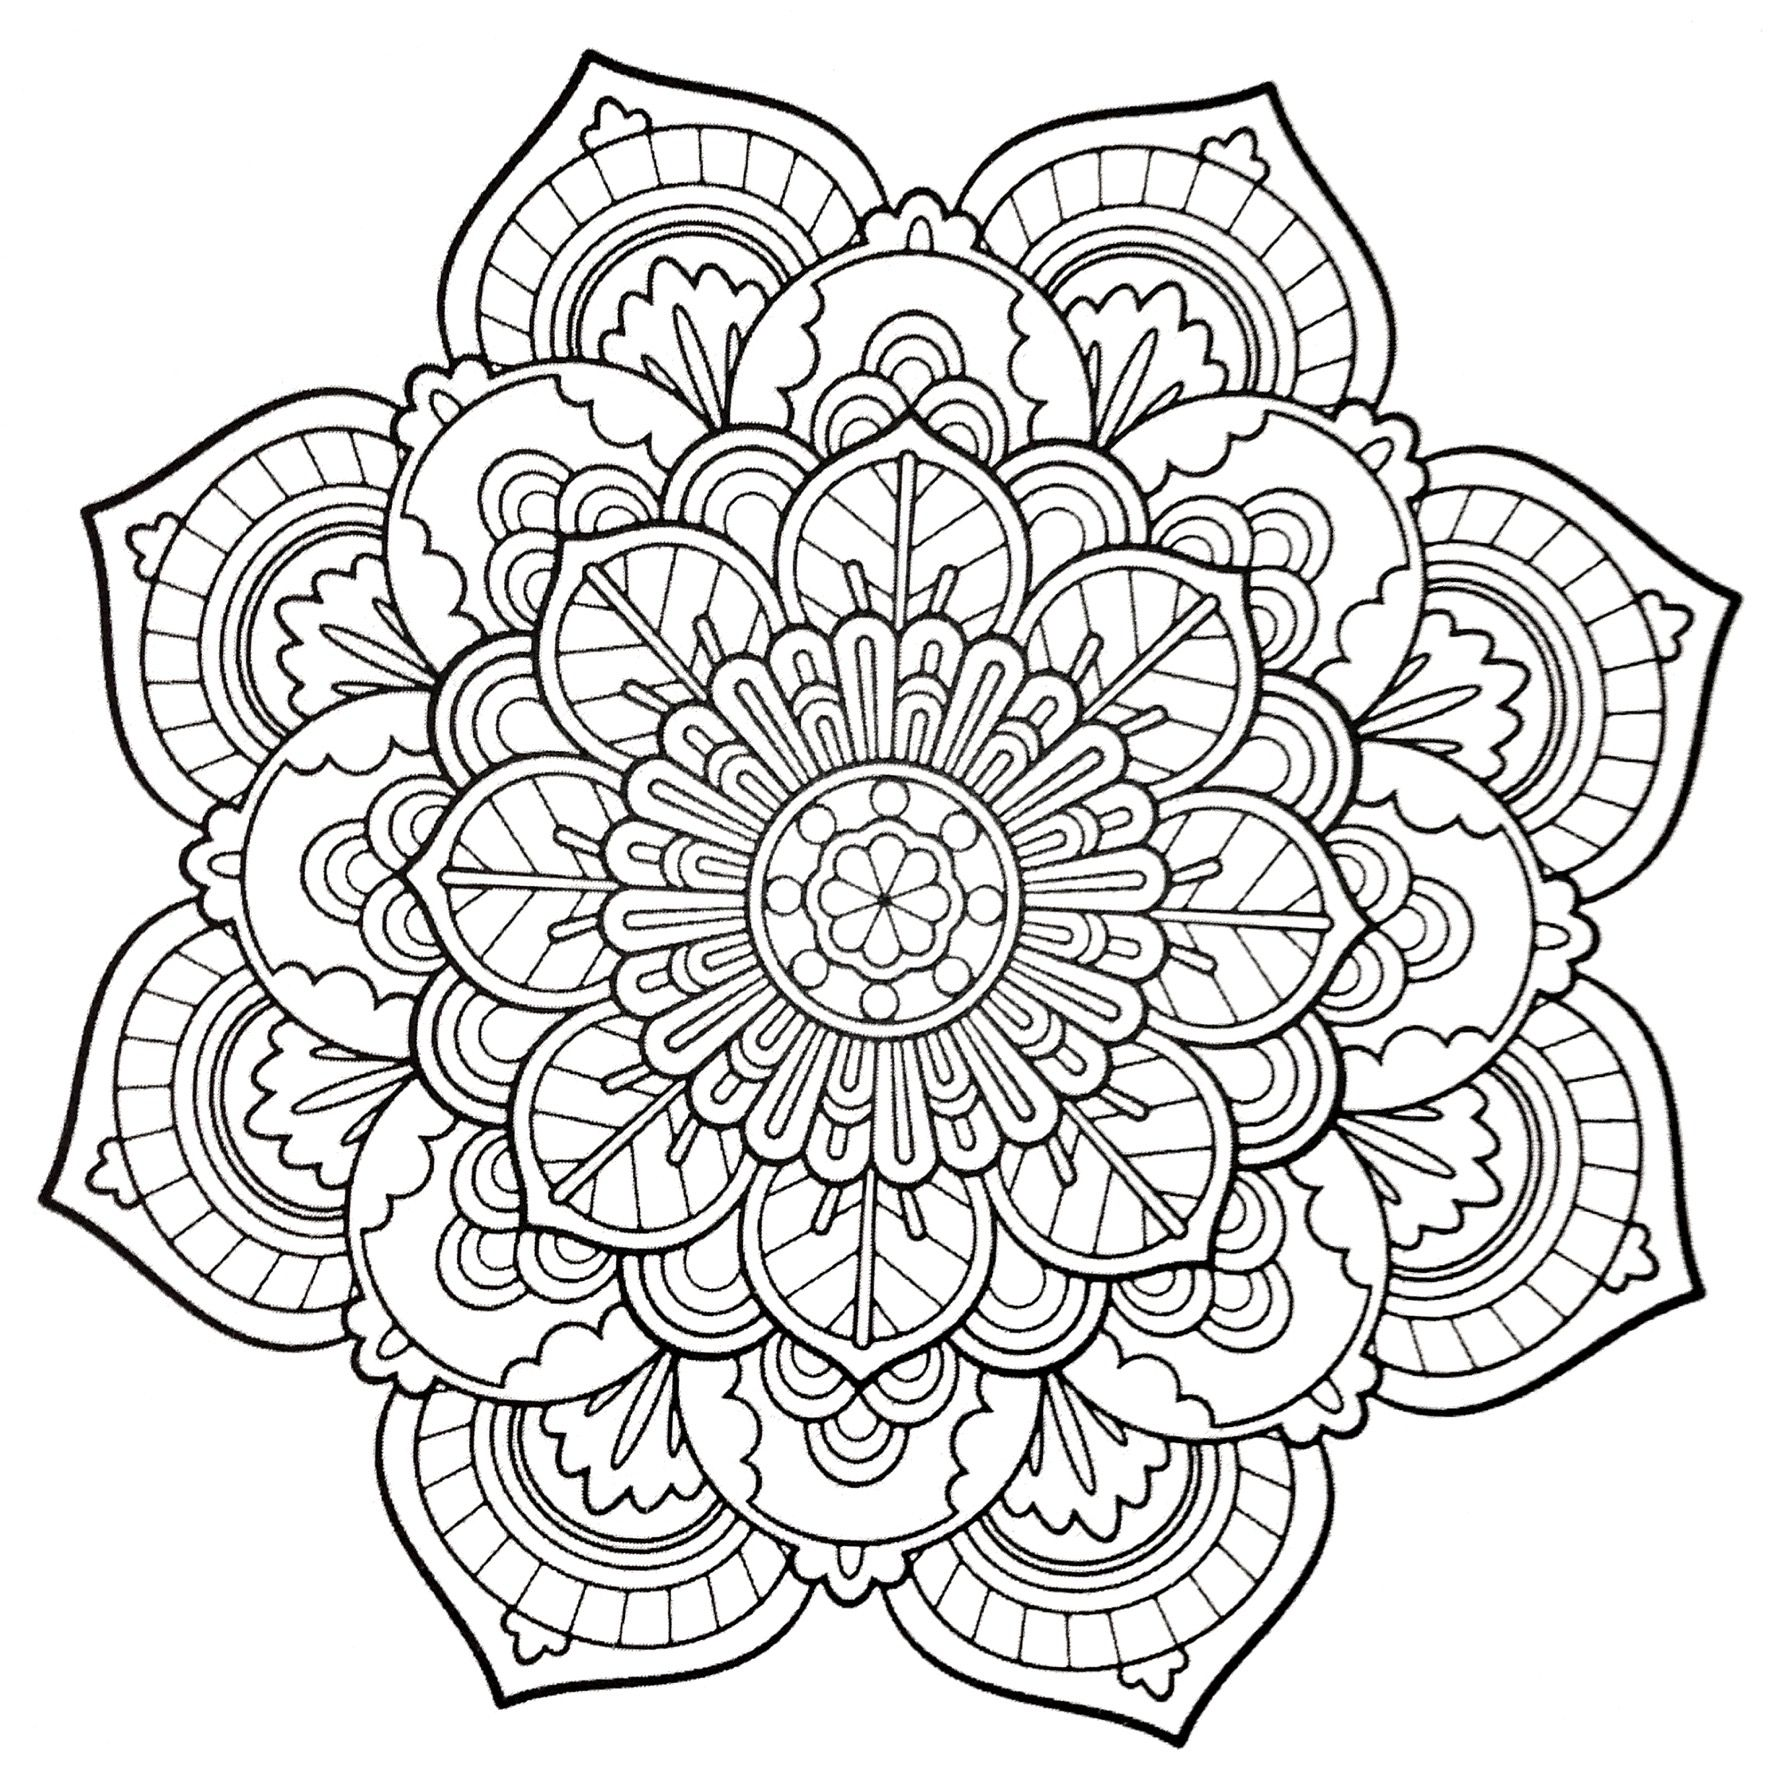 Pin By Mariana Cobzaru On Coloring Pages Mandala Coloring Pages Mandala Coloring Free Online Coloring